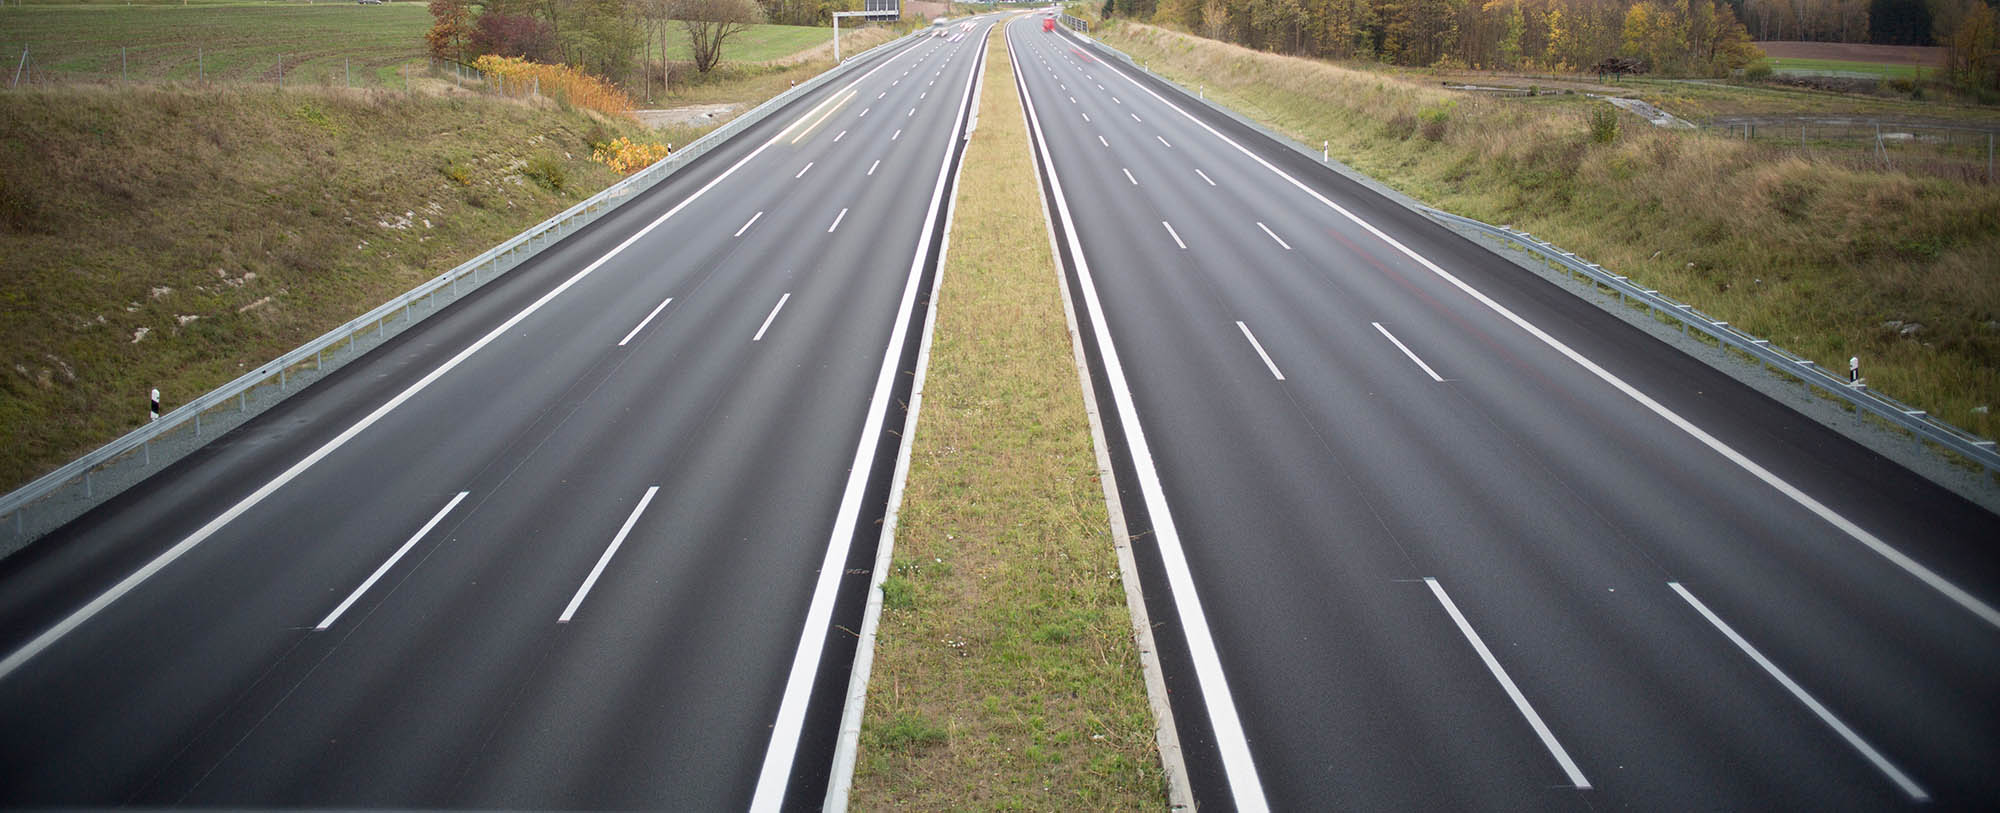 americas-best-highways-and-roads